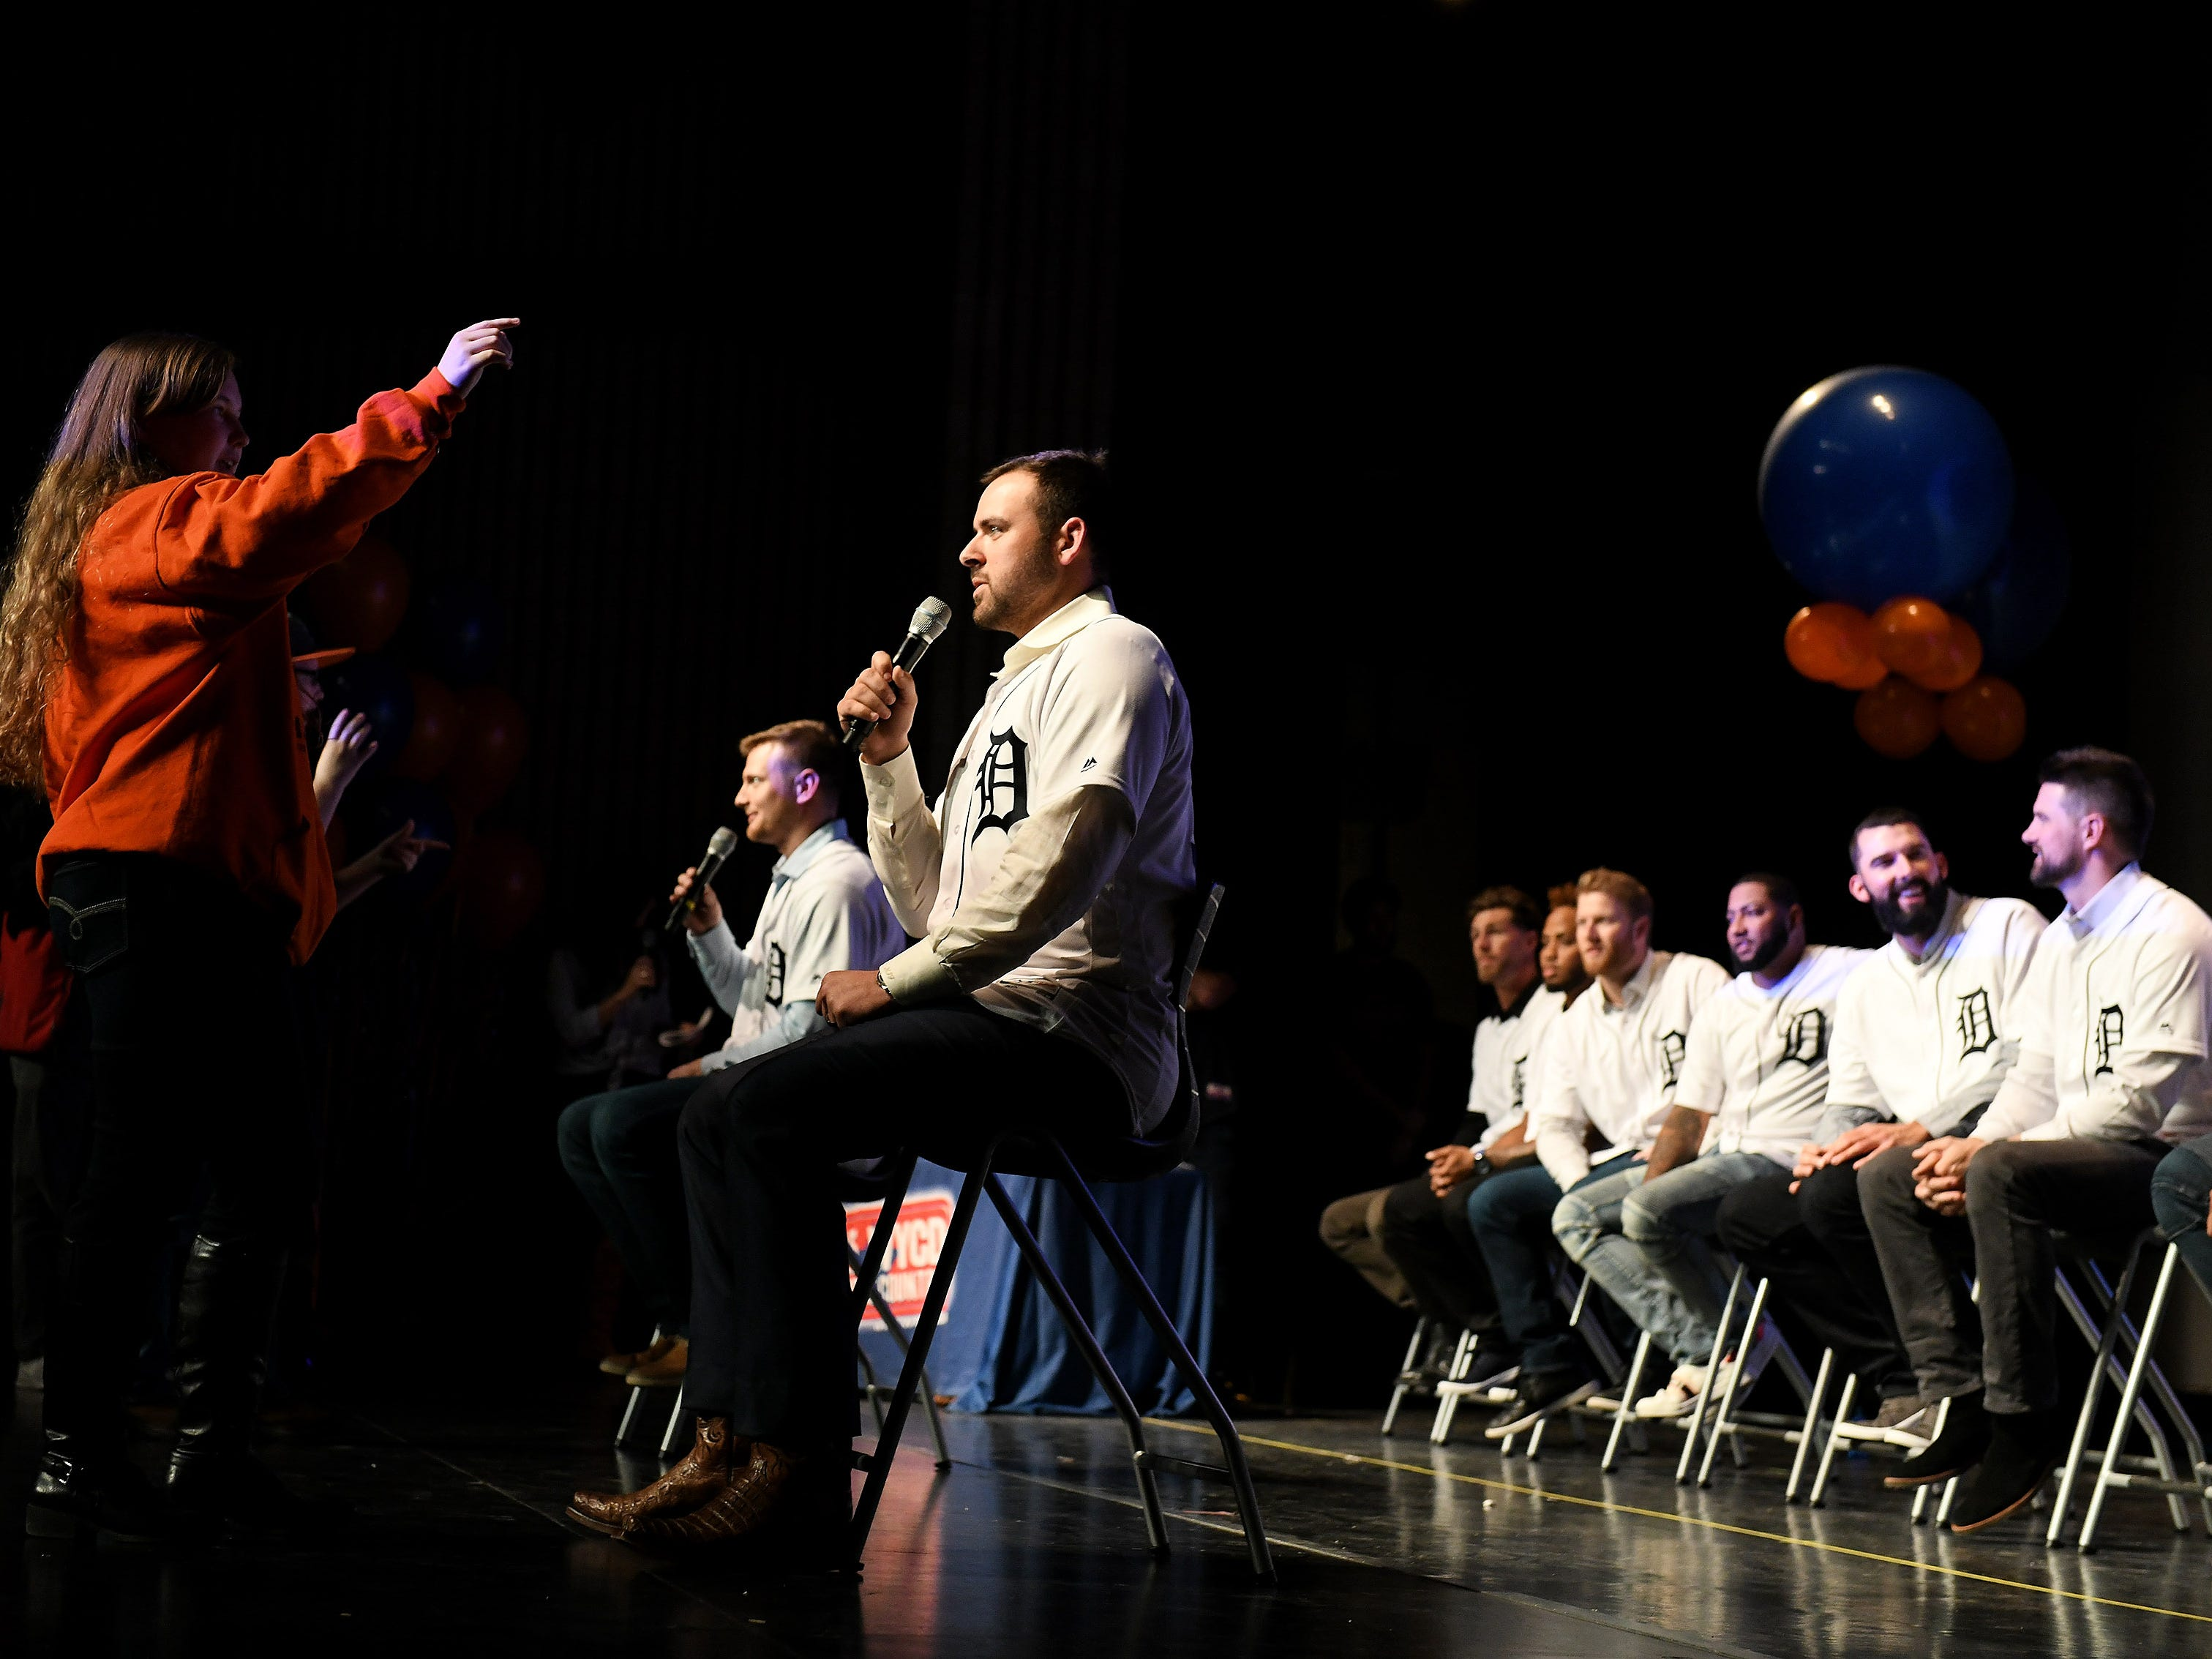 Lorna Davis, 15, of Carelton, left, gives clues to Tigers pitcher Michael Fulmer while they play a charades type game at a kids rally at Novi High School.